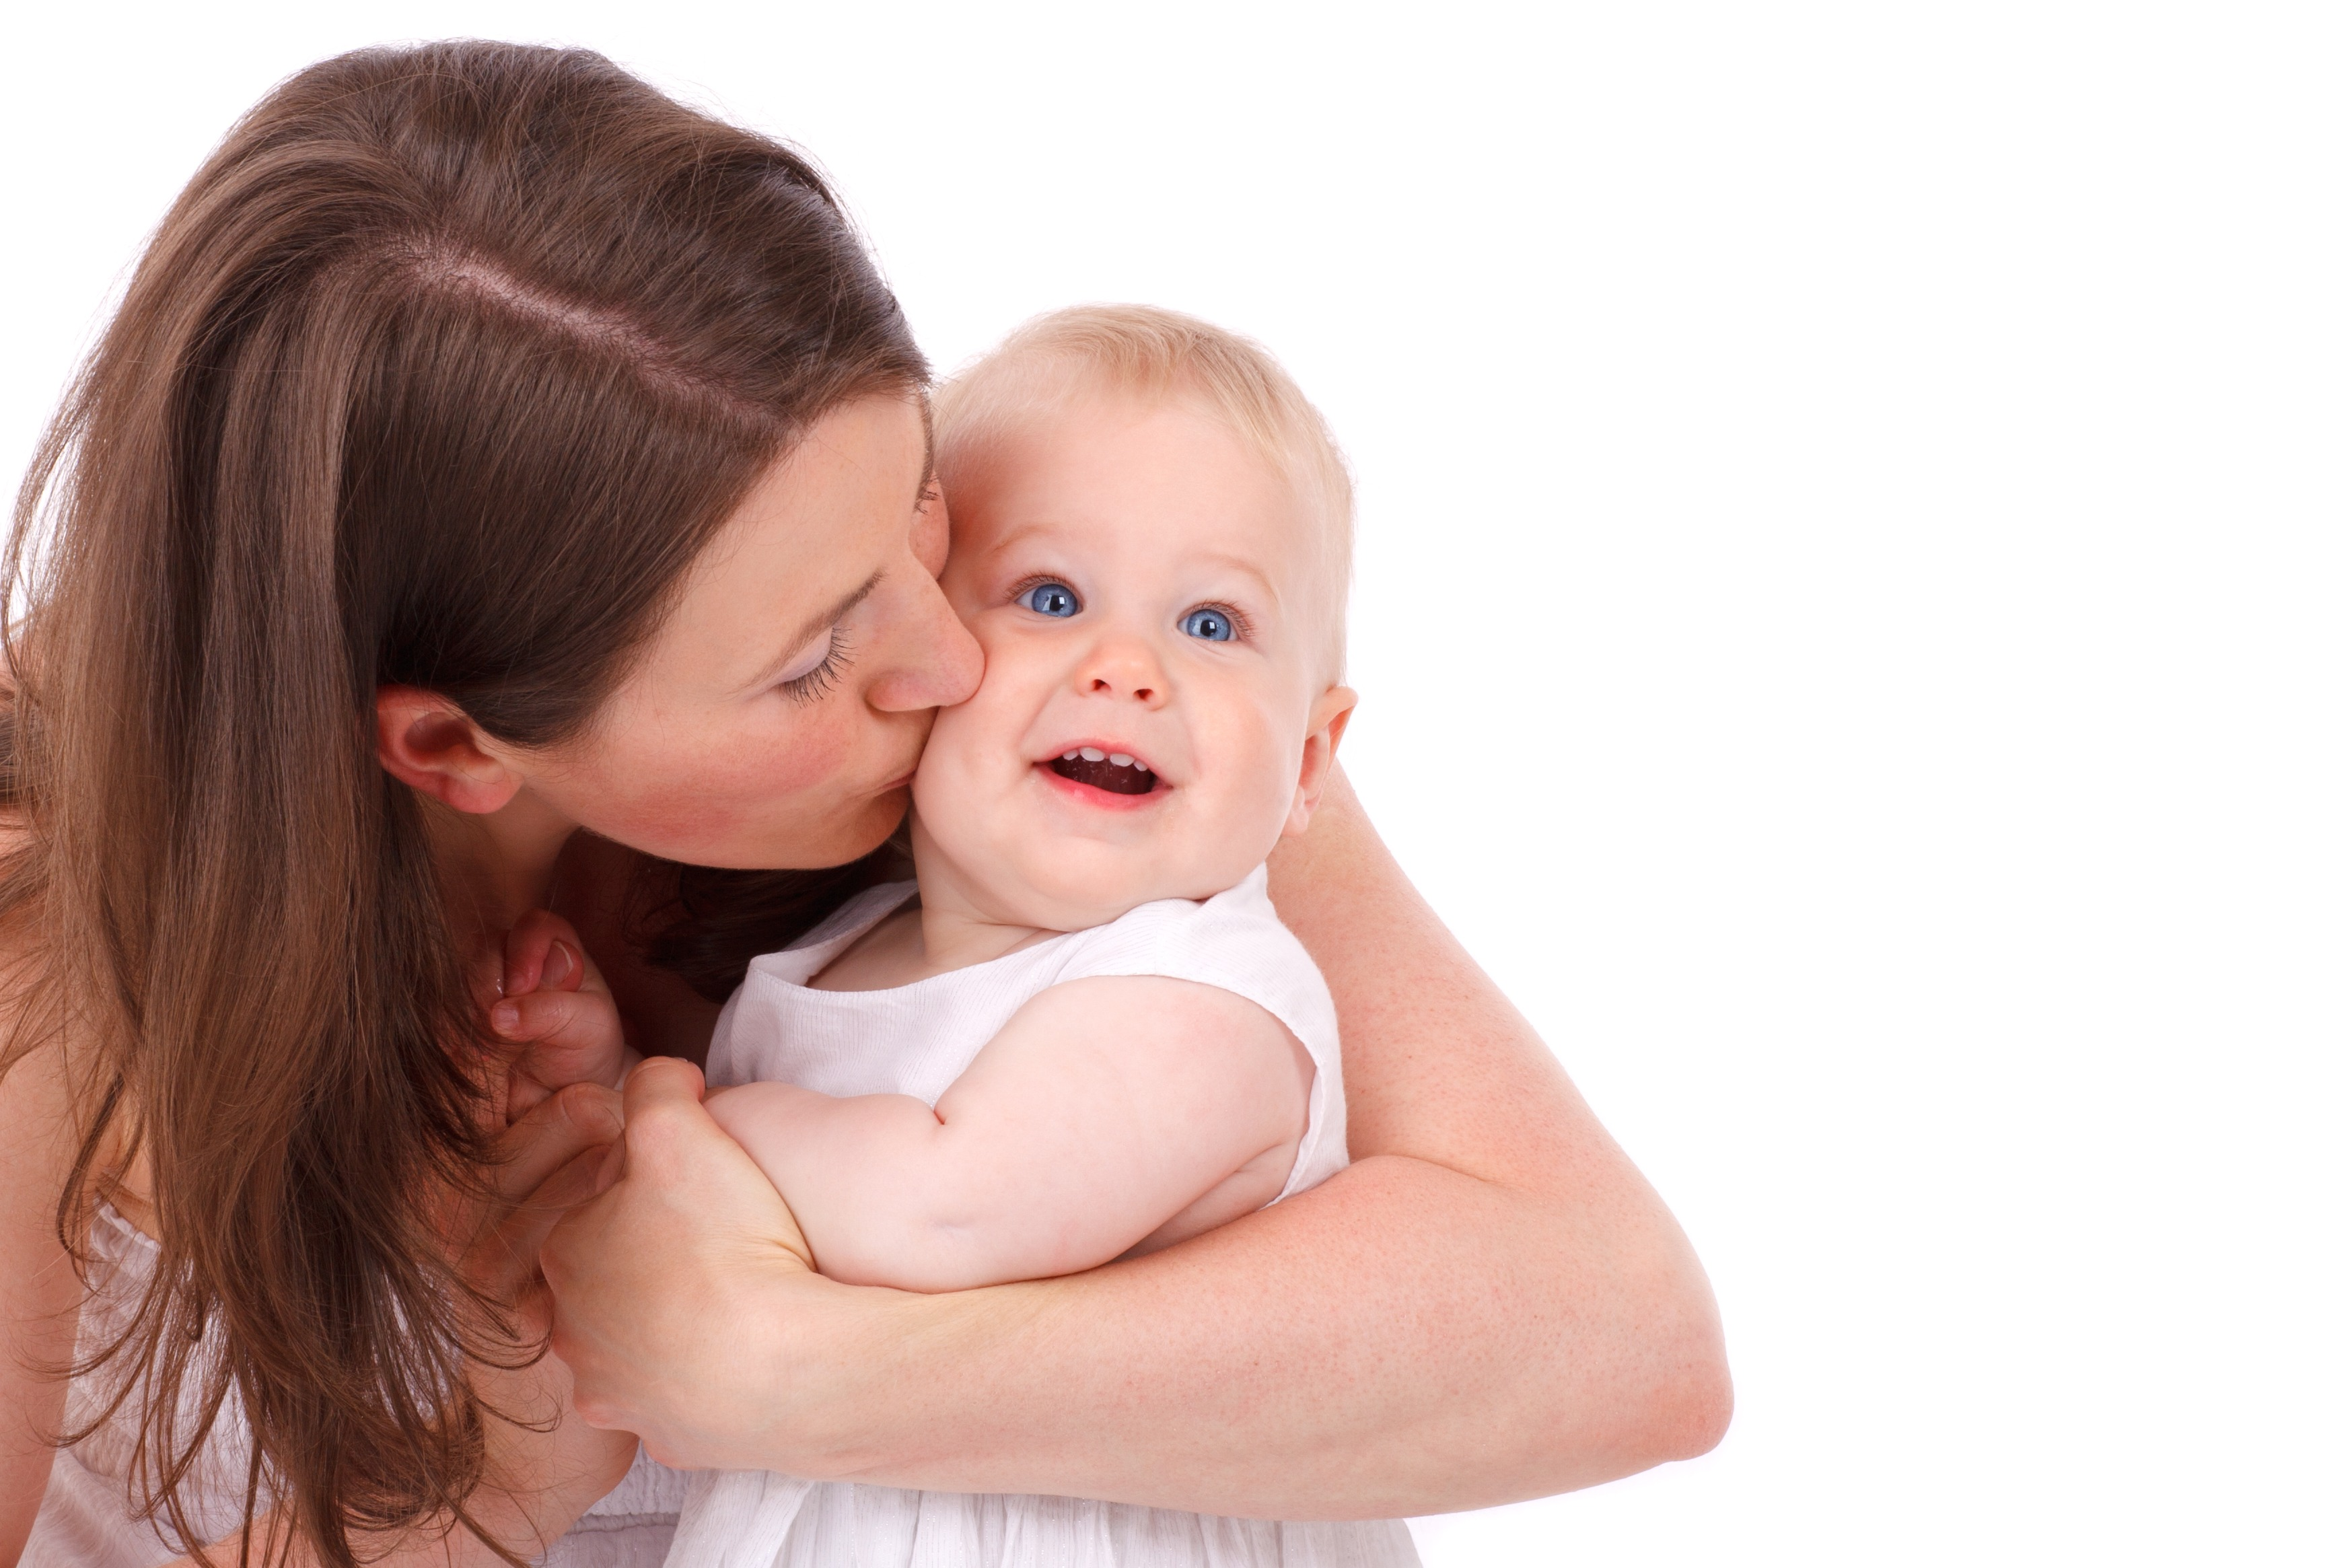 Mother's love photo